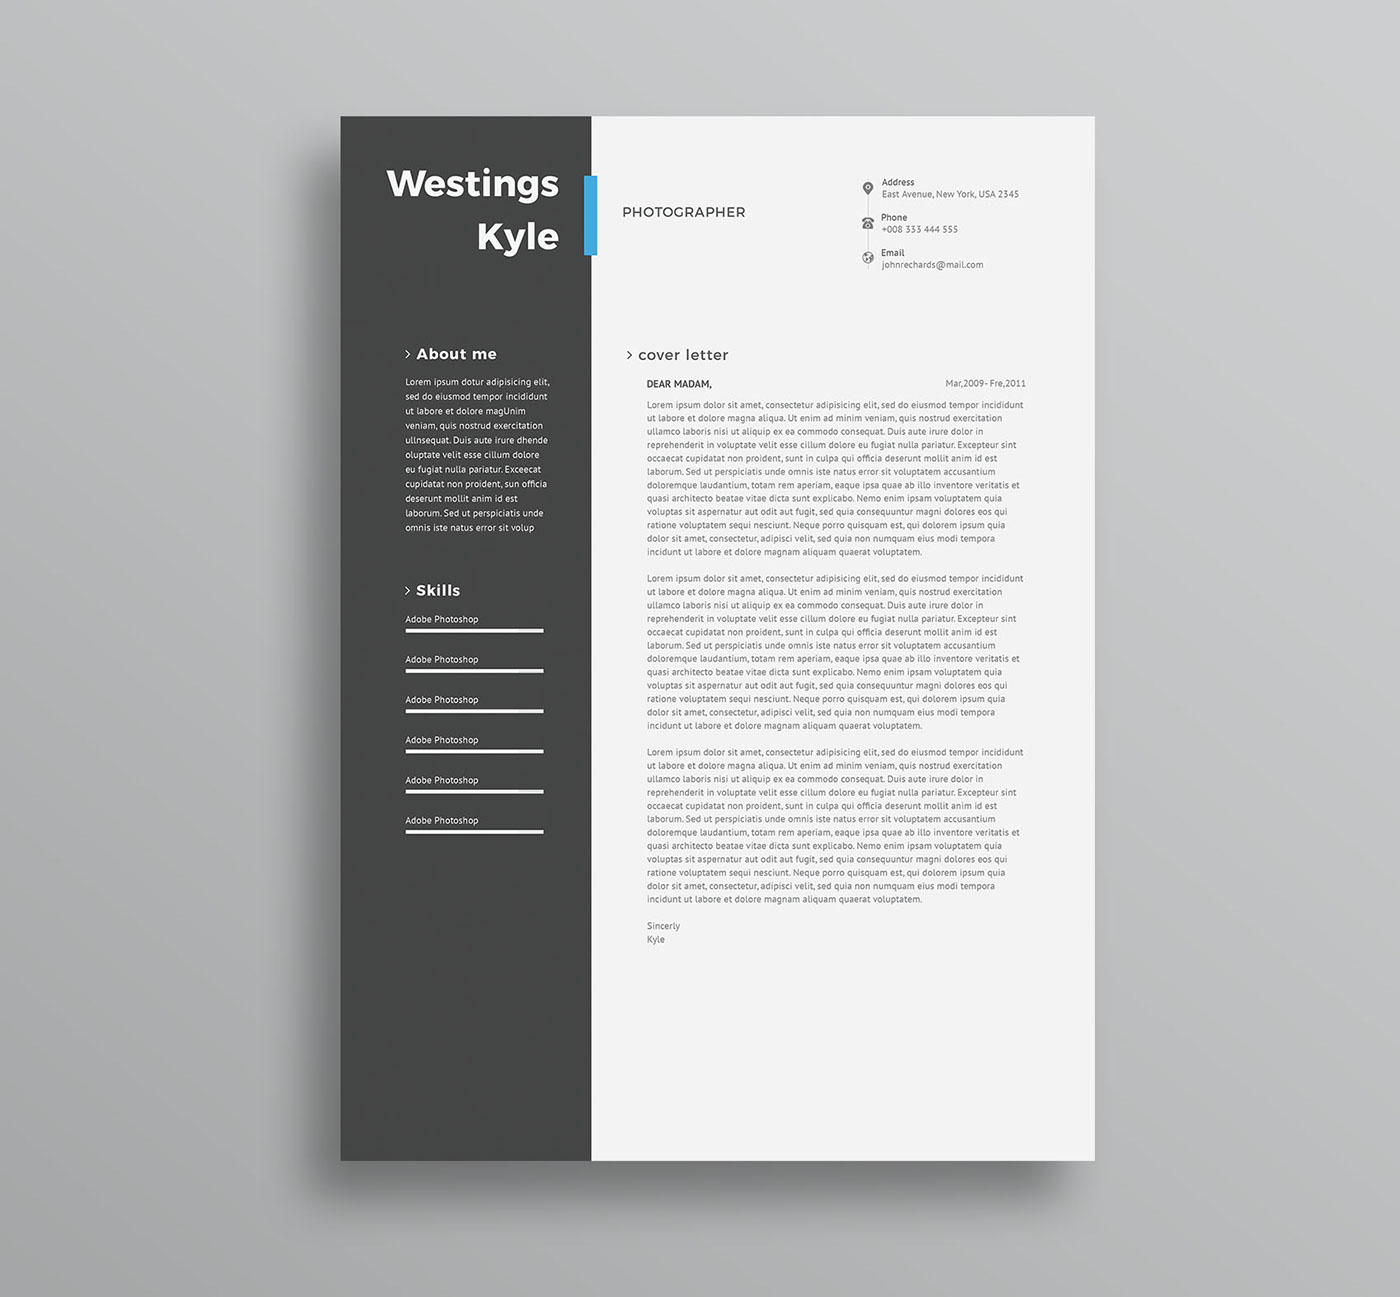 free professional resume template  cv  in word and ps on behance